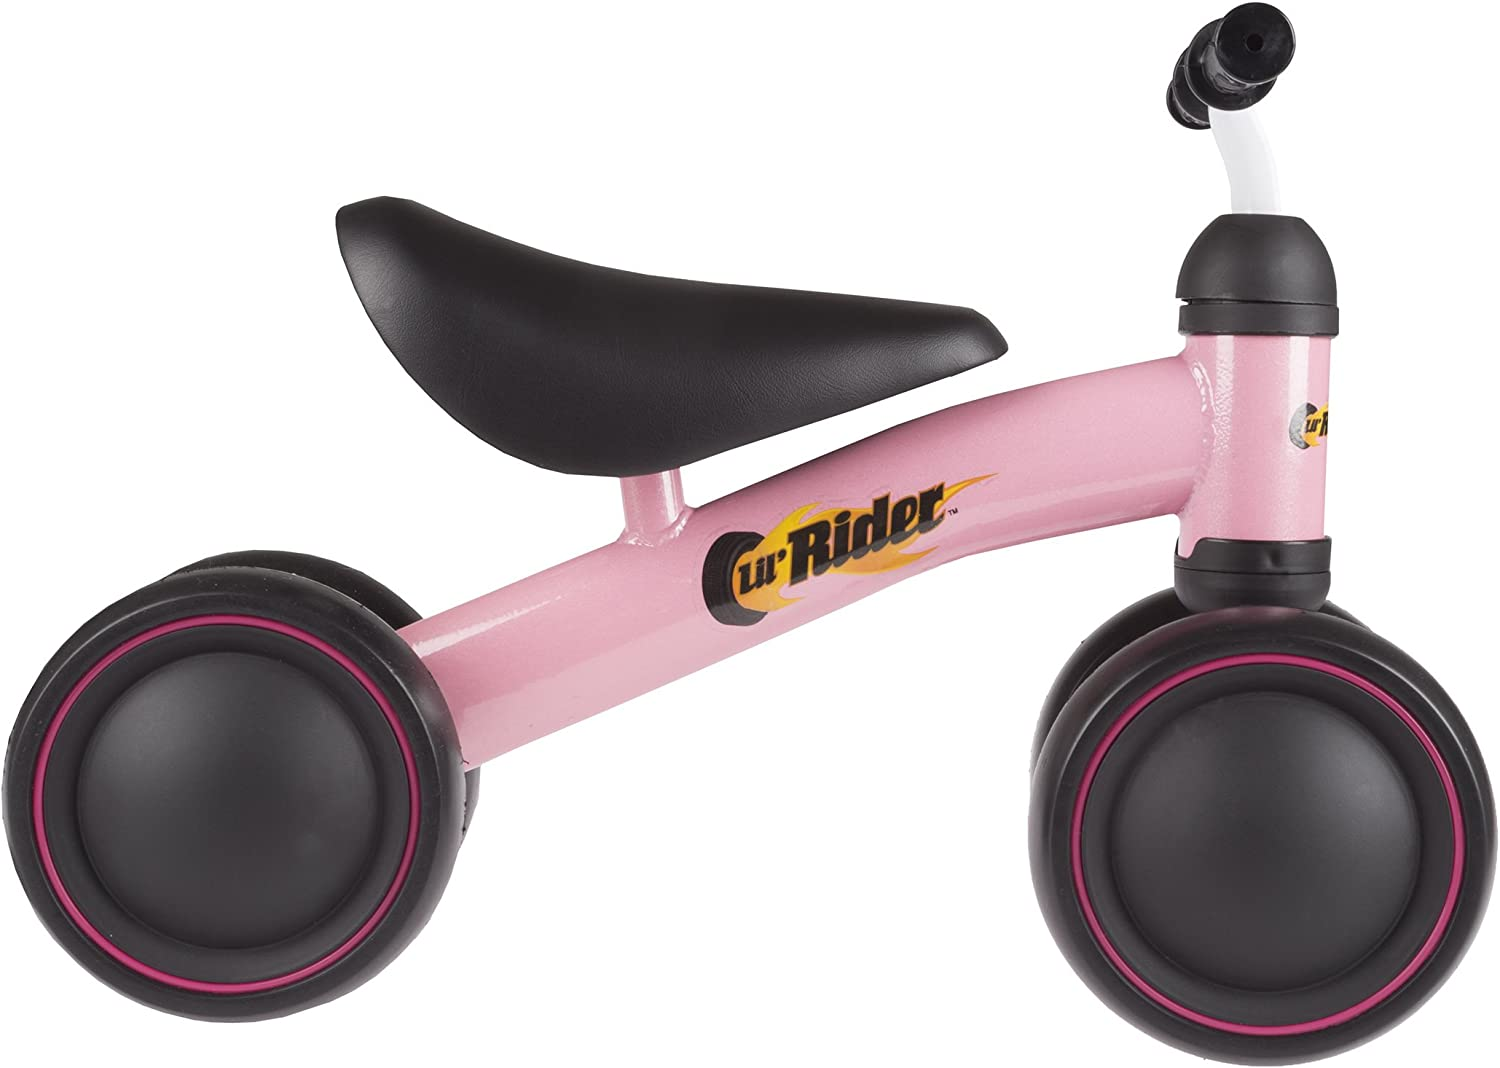 Polesie Polesie46406 Didactic 3 Tricycle with Handle and Straps Toy